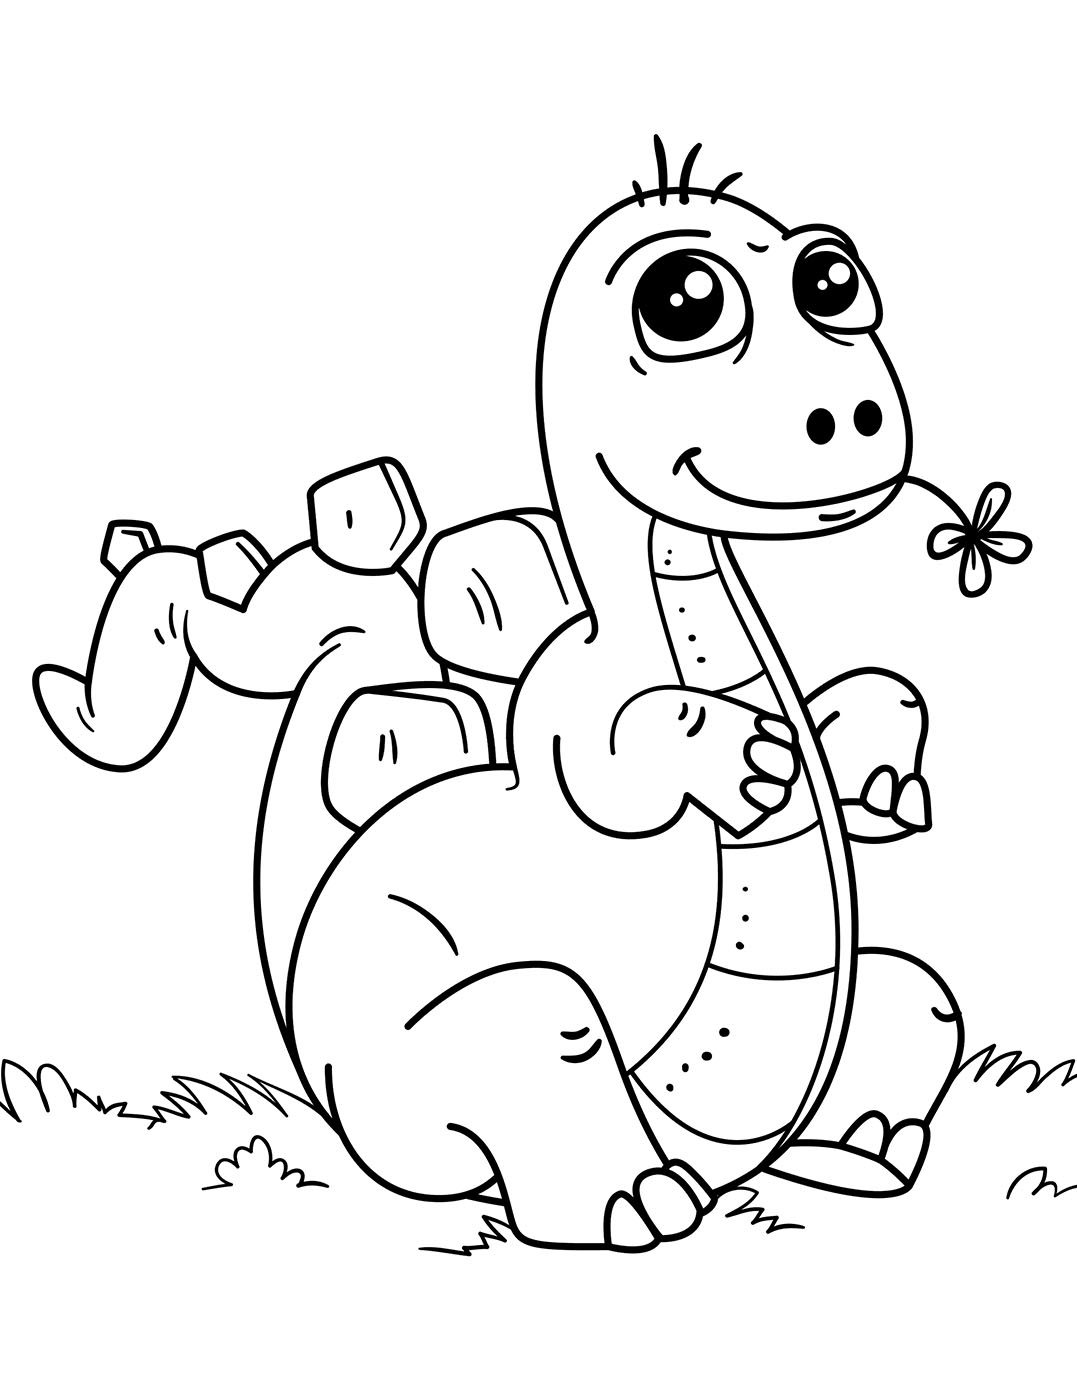 dinasour coloring pages dinosaurs to print triceratops dinosaurs kids coloring coloring dinasour pages